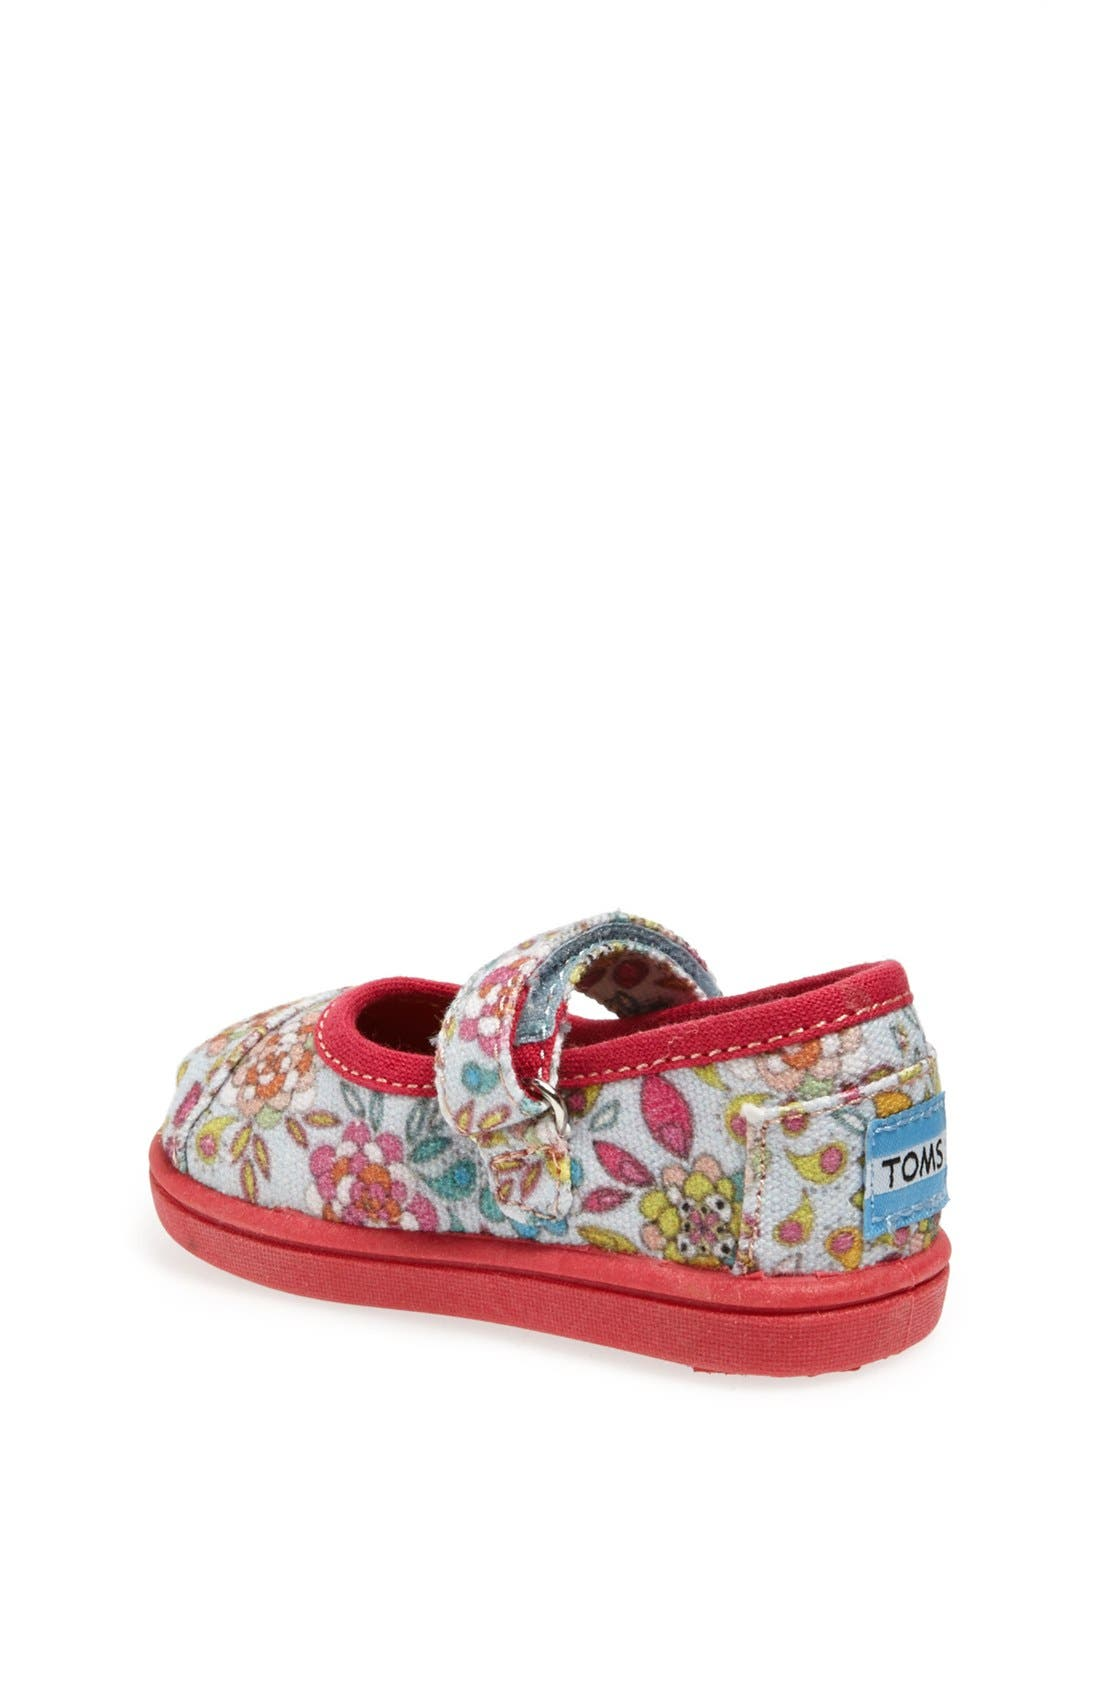 Alternate Image 2  - TOMS 'Tiny - Inked Floral' Mary Jane Flat (Baby, Walker & Toddler)